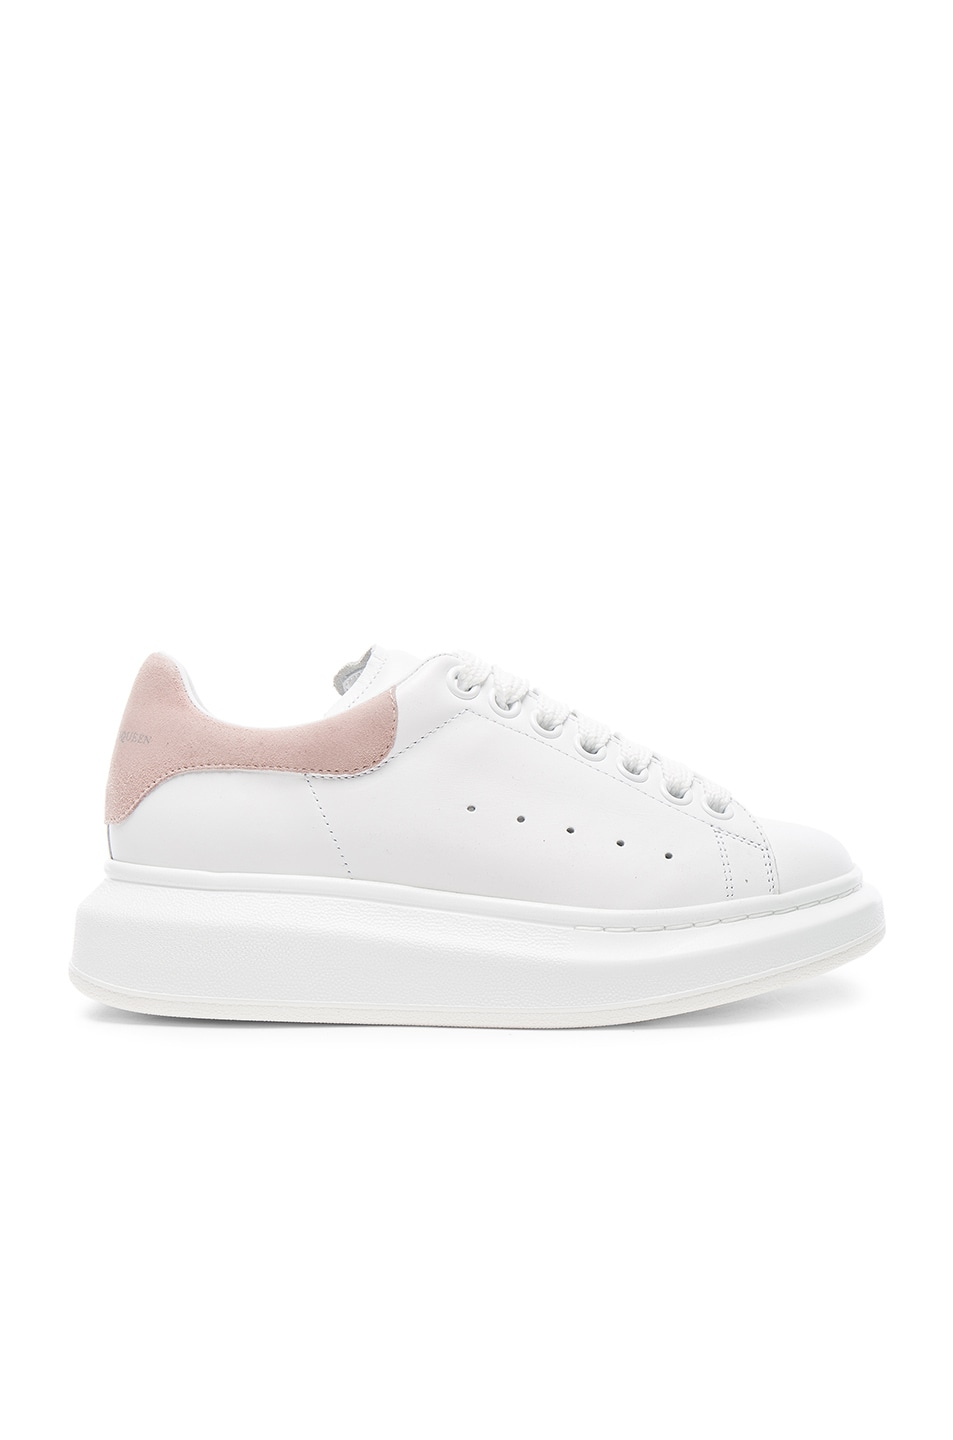 Image 1 of Alexander McQueen Platform Lace Up Sneakers in White & Patchouli